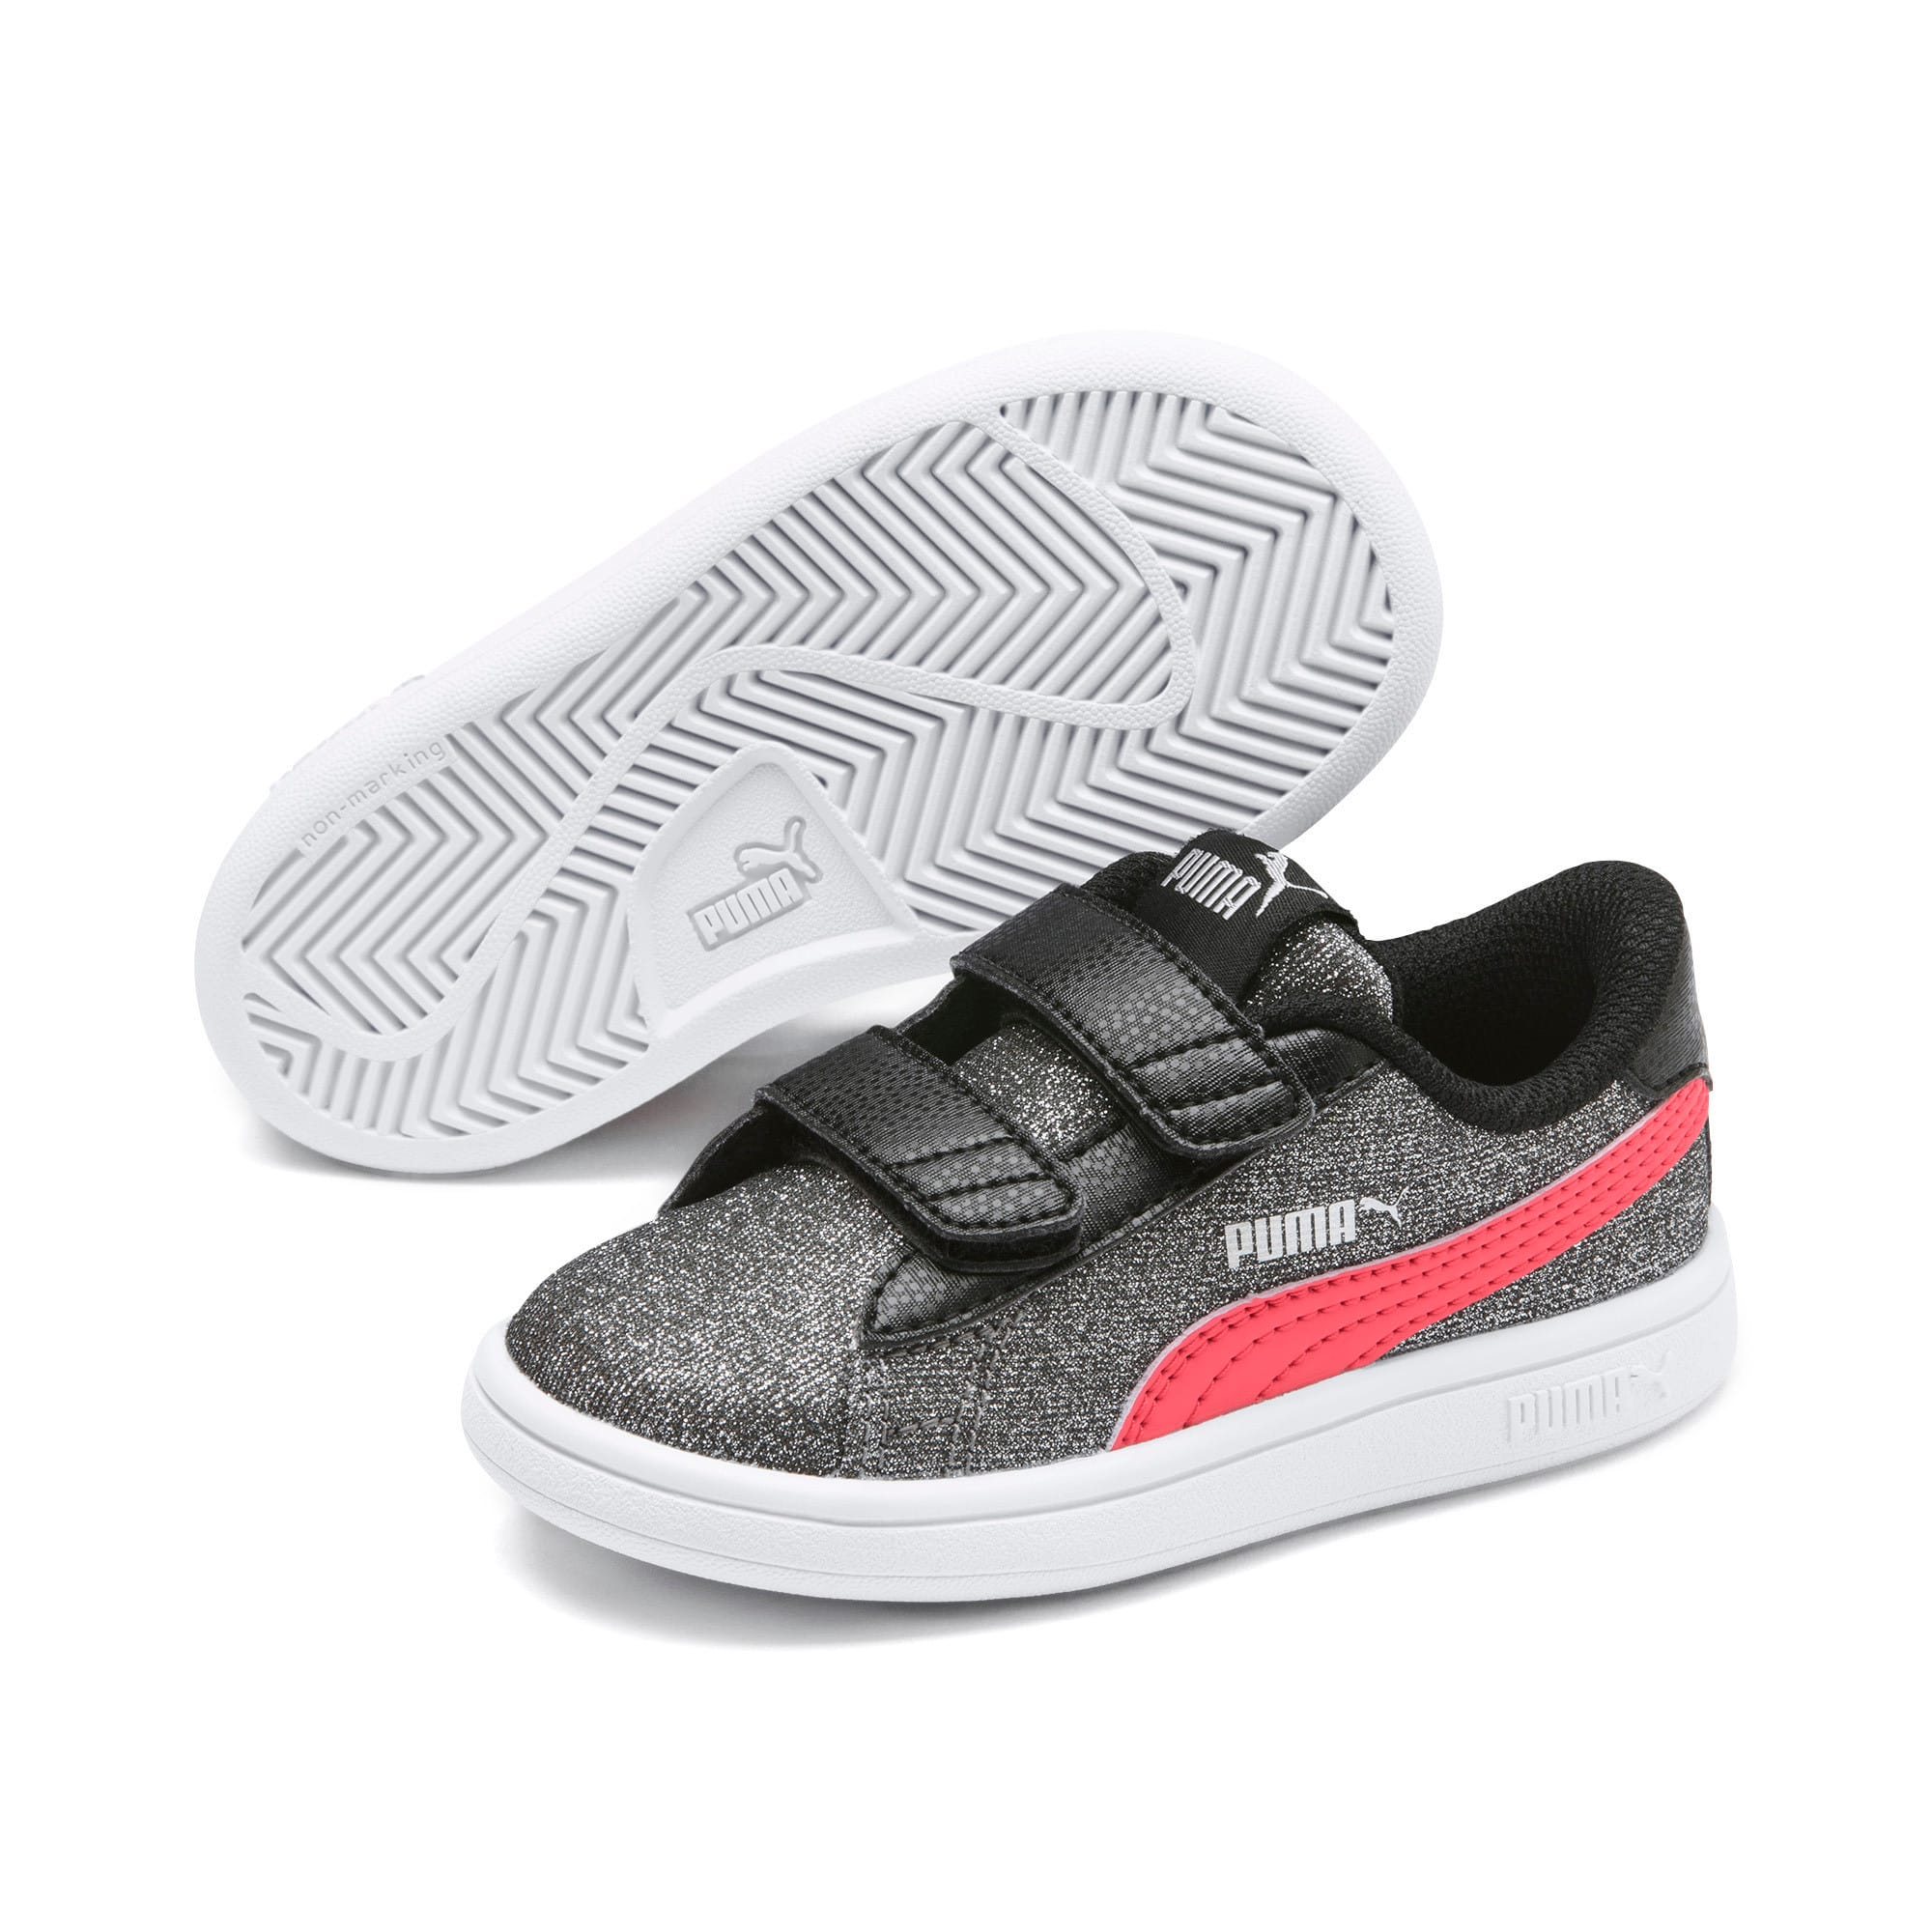 Thumbnail 2 of PUMA Smash v2 Glitz Glam Baby Girls' Trainers, Puma Black-Calypso Coral, medium